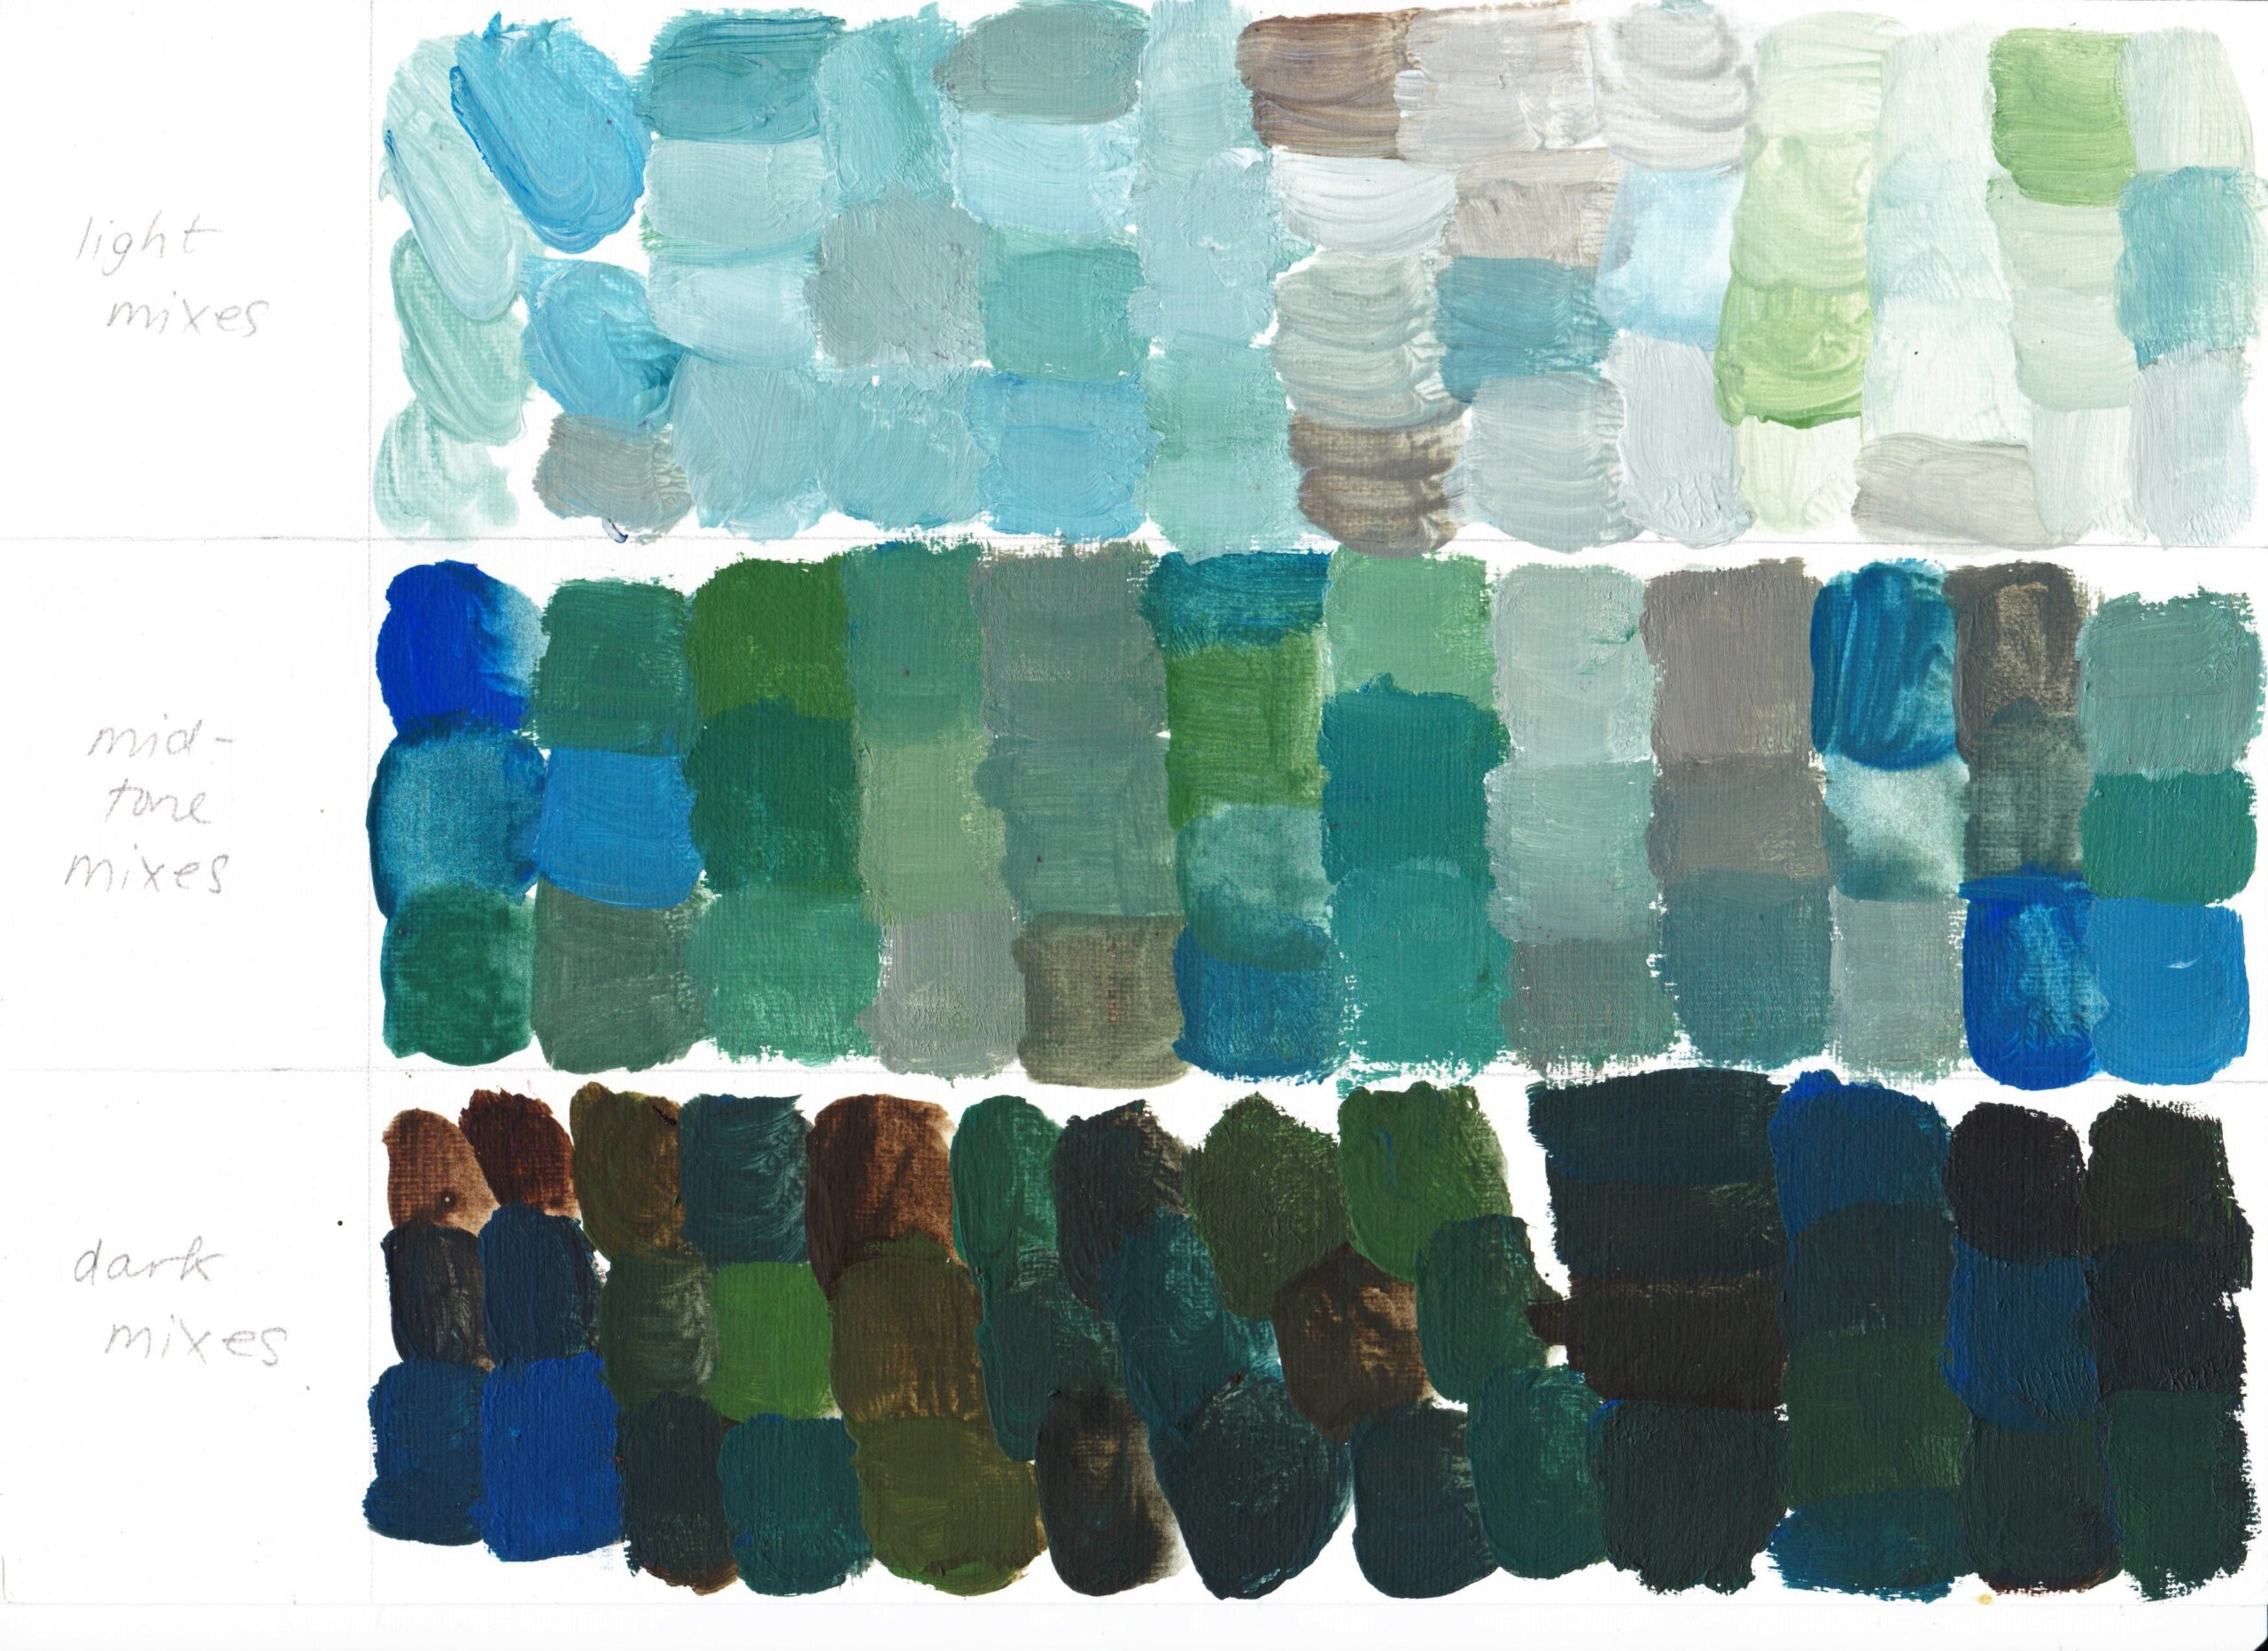 Light, mid-tone and dark colour mixes made with Oxide of Chromium, Cobalt Blue Hue, Raw Umber and White